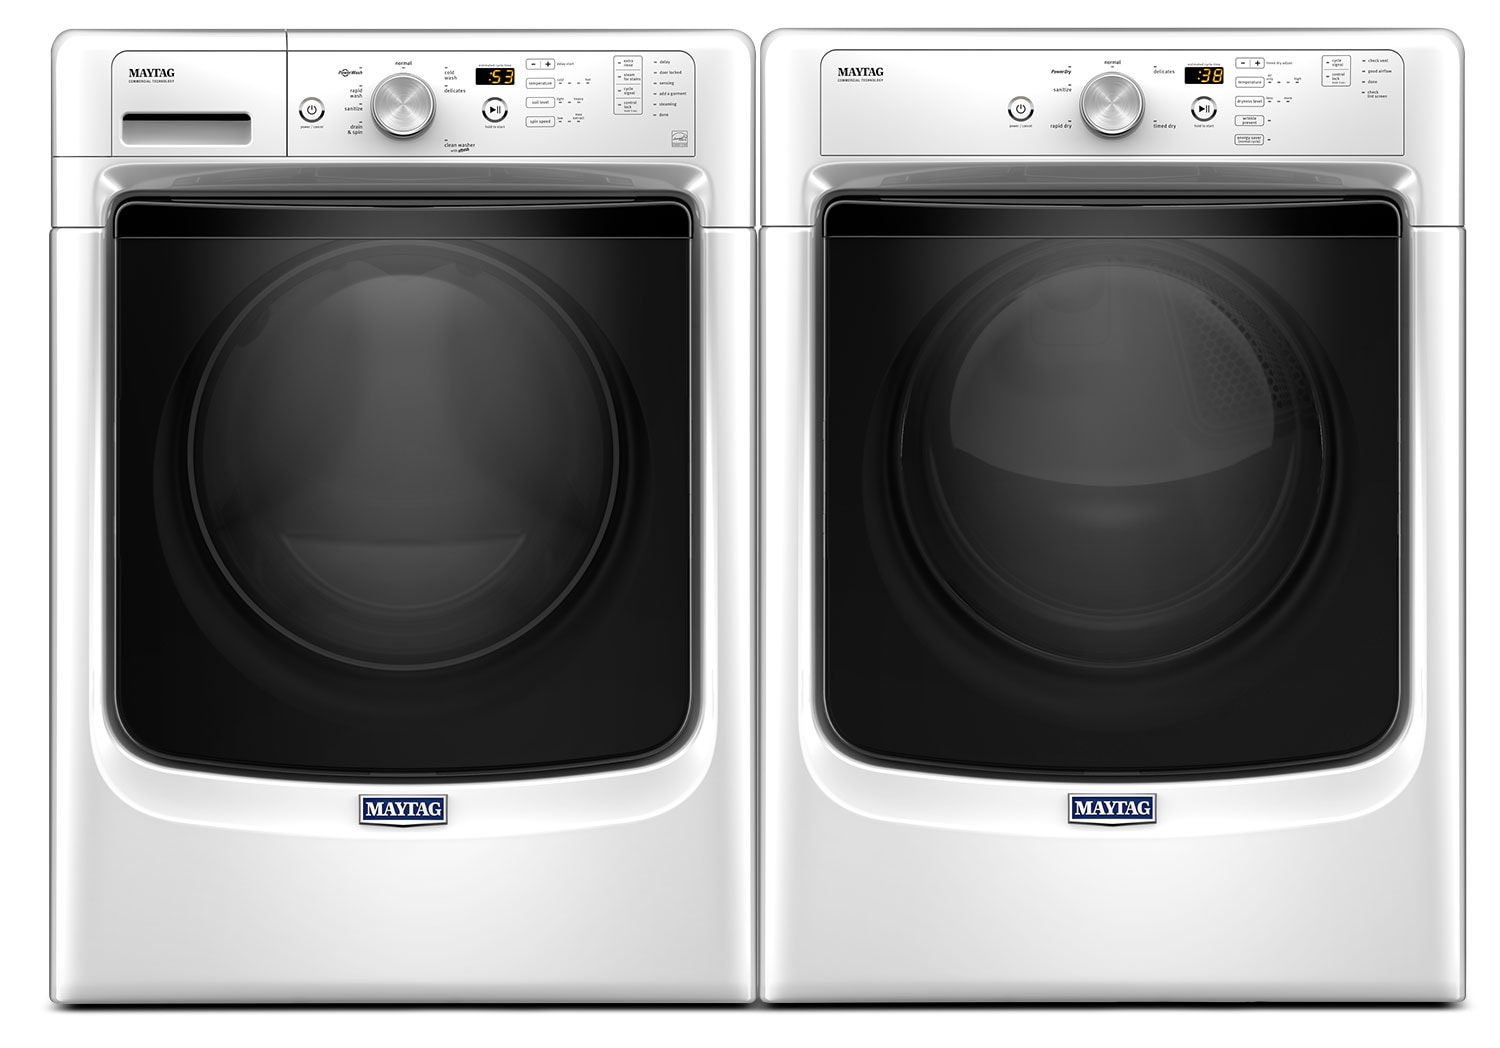 Maytag 5.2 Cu. Ft. Front-Load Washer and 7.4 Cu. Ft. Electric Dryer – White